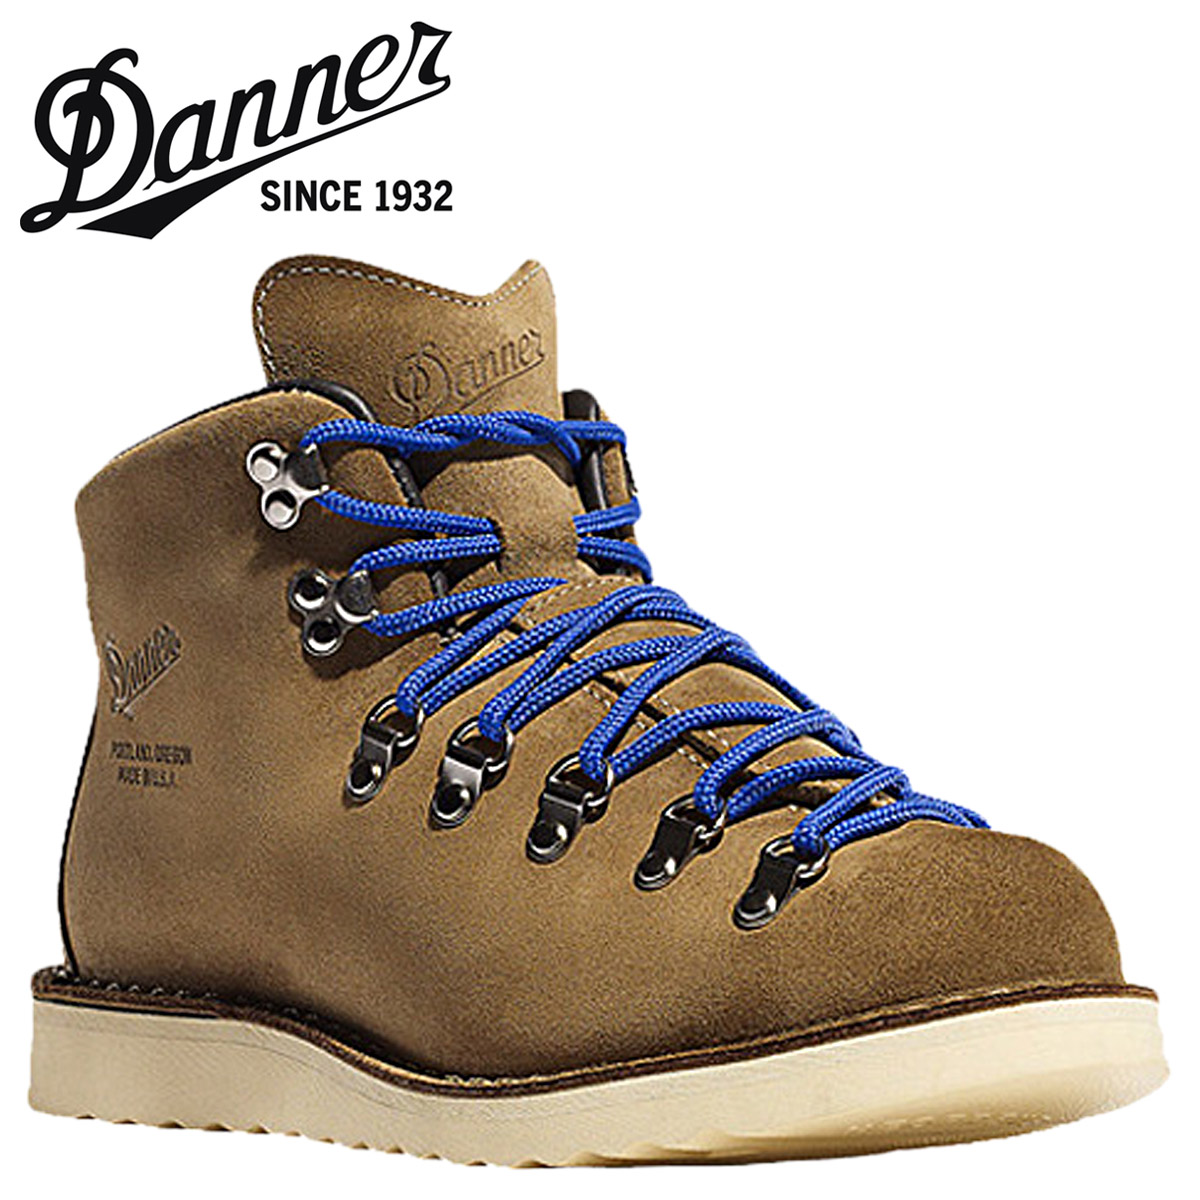 Danner Danner mountain light Terminal 4 sandbege × Blue Suede mens boots Made in USA limited mountain trail